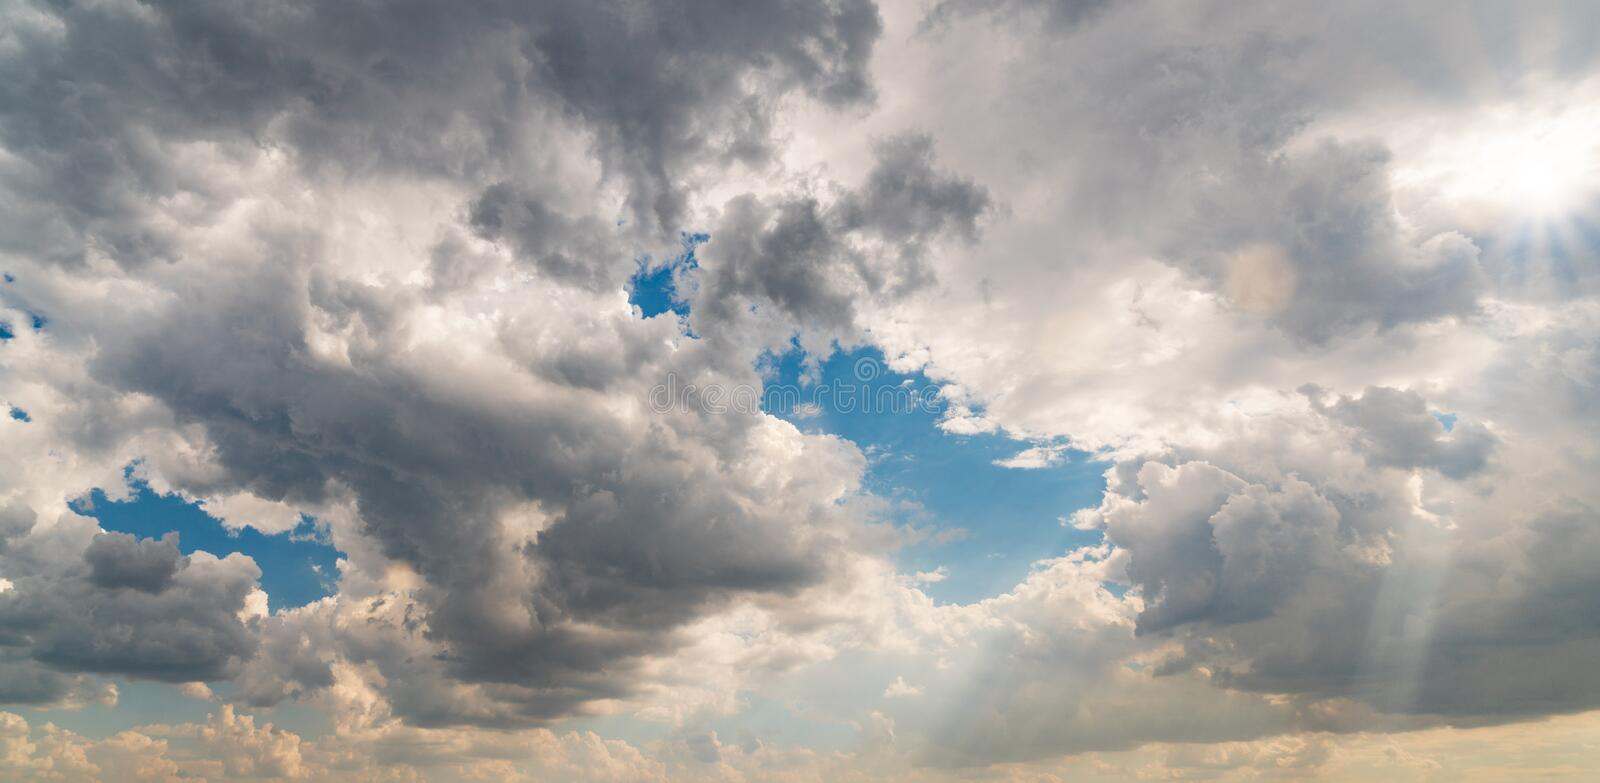 Blue sky and white clouds on day time. Storm clouds. For background usage stock photos